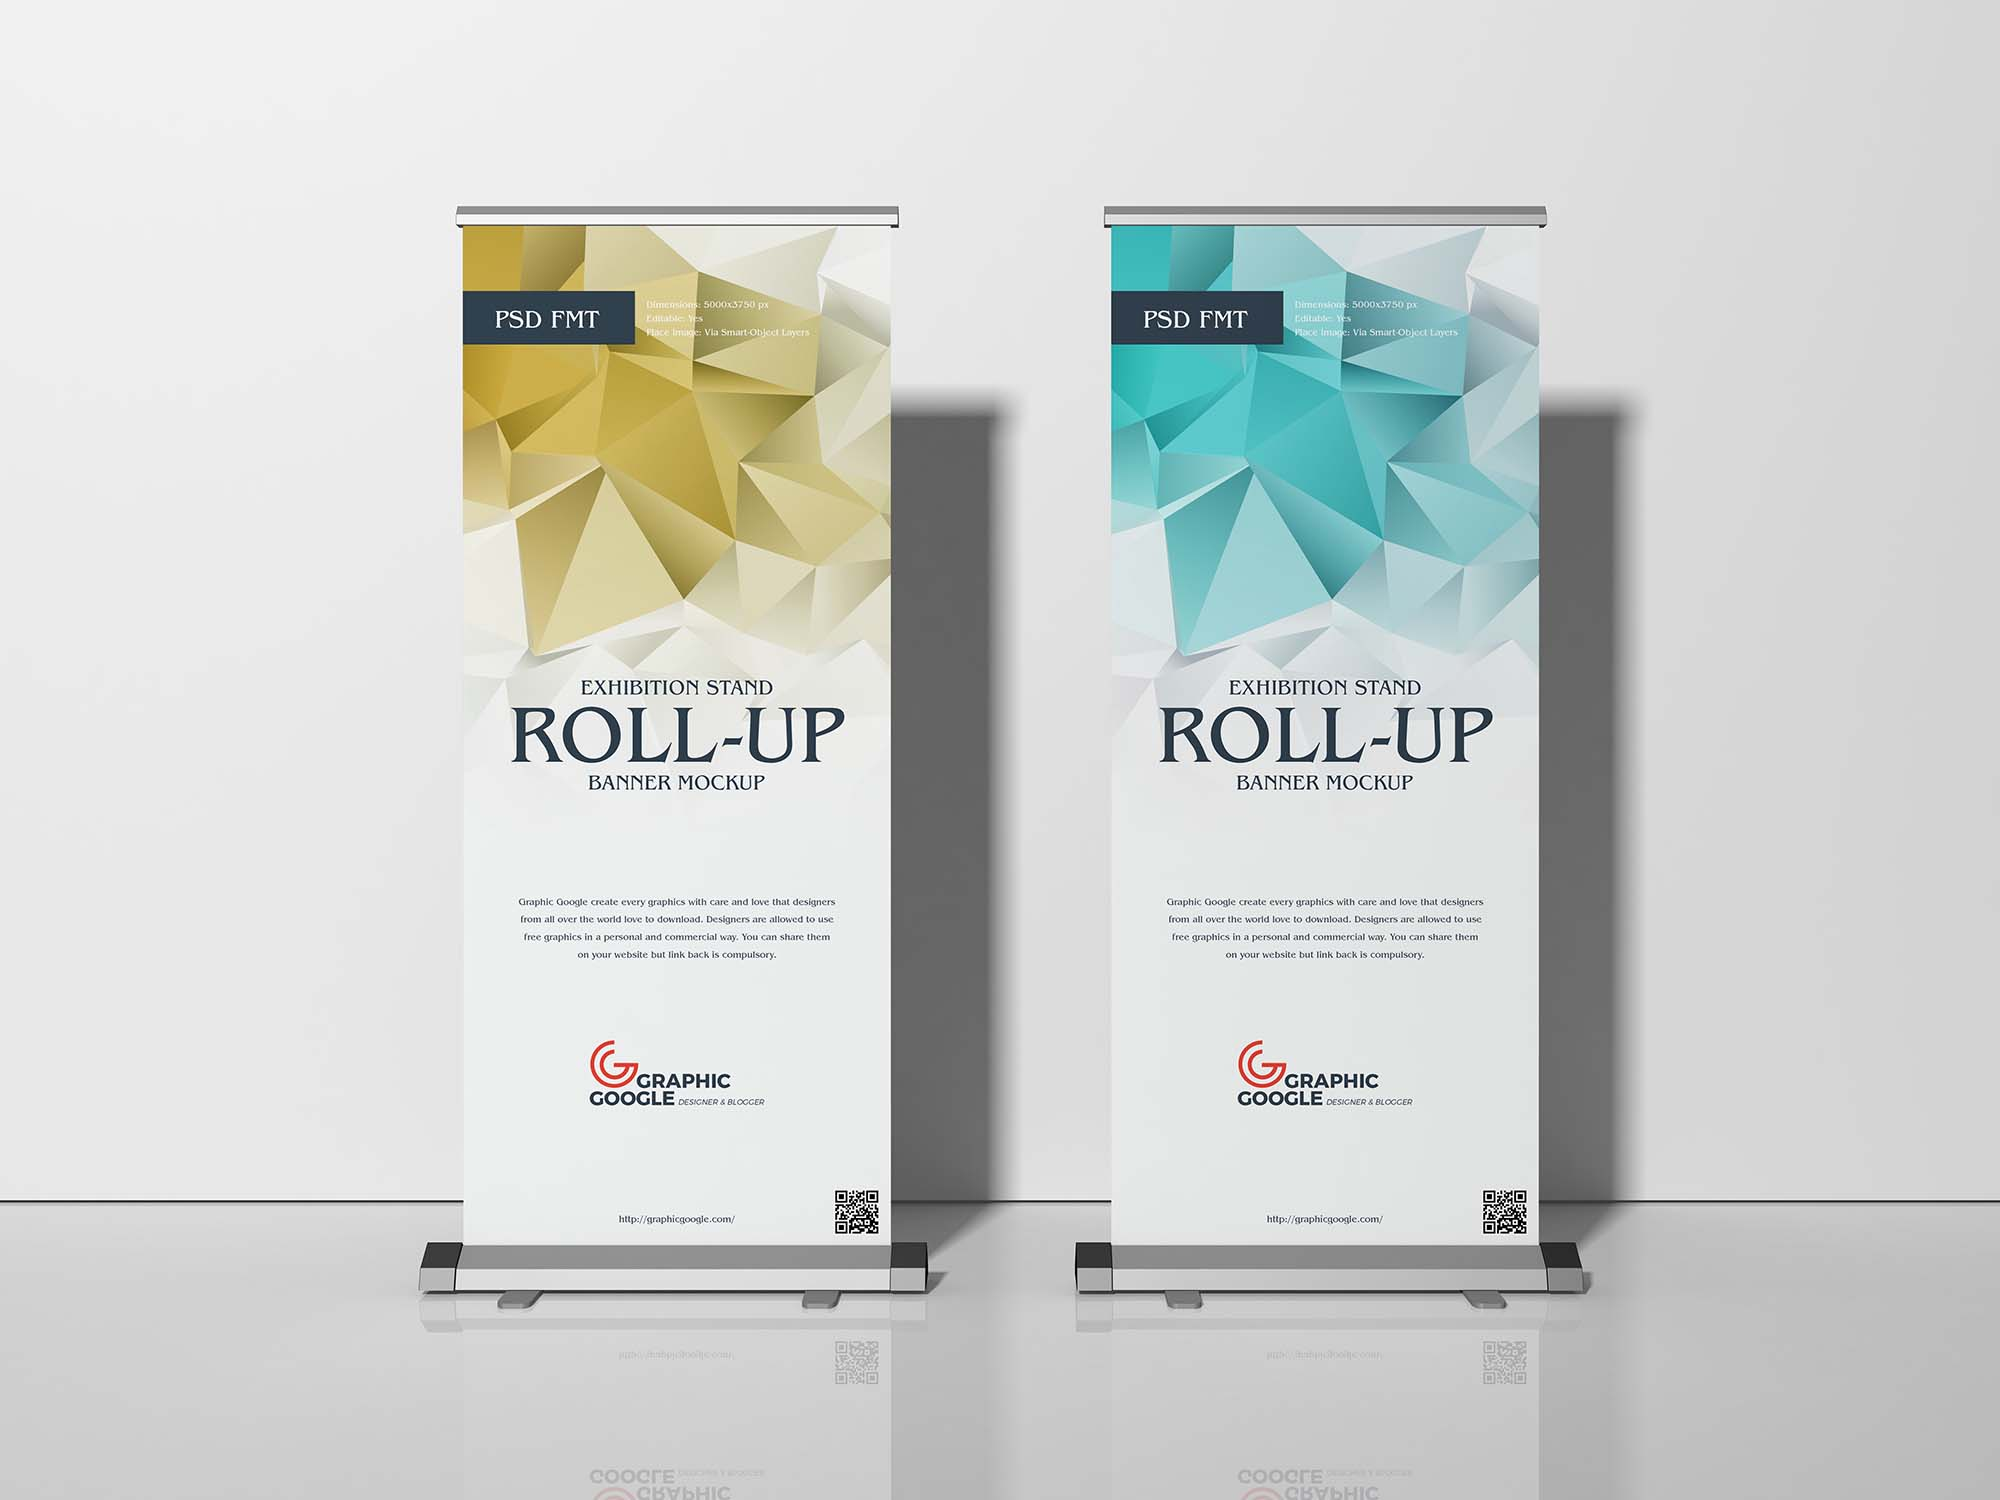 Free Exhibition Stand Roll Up Banner Mockup Psd